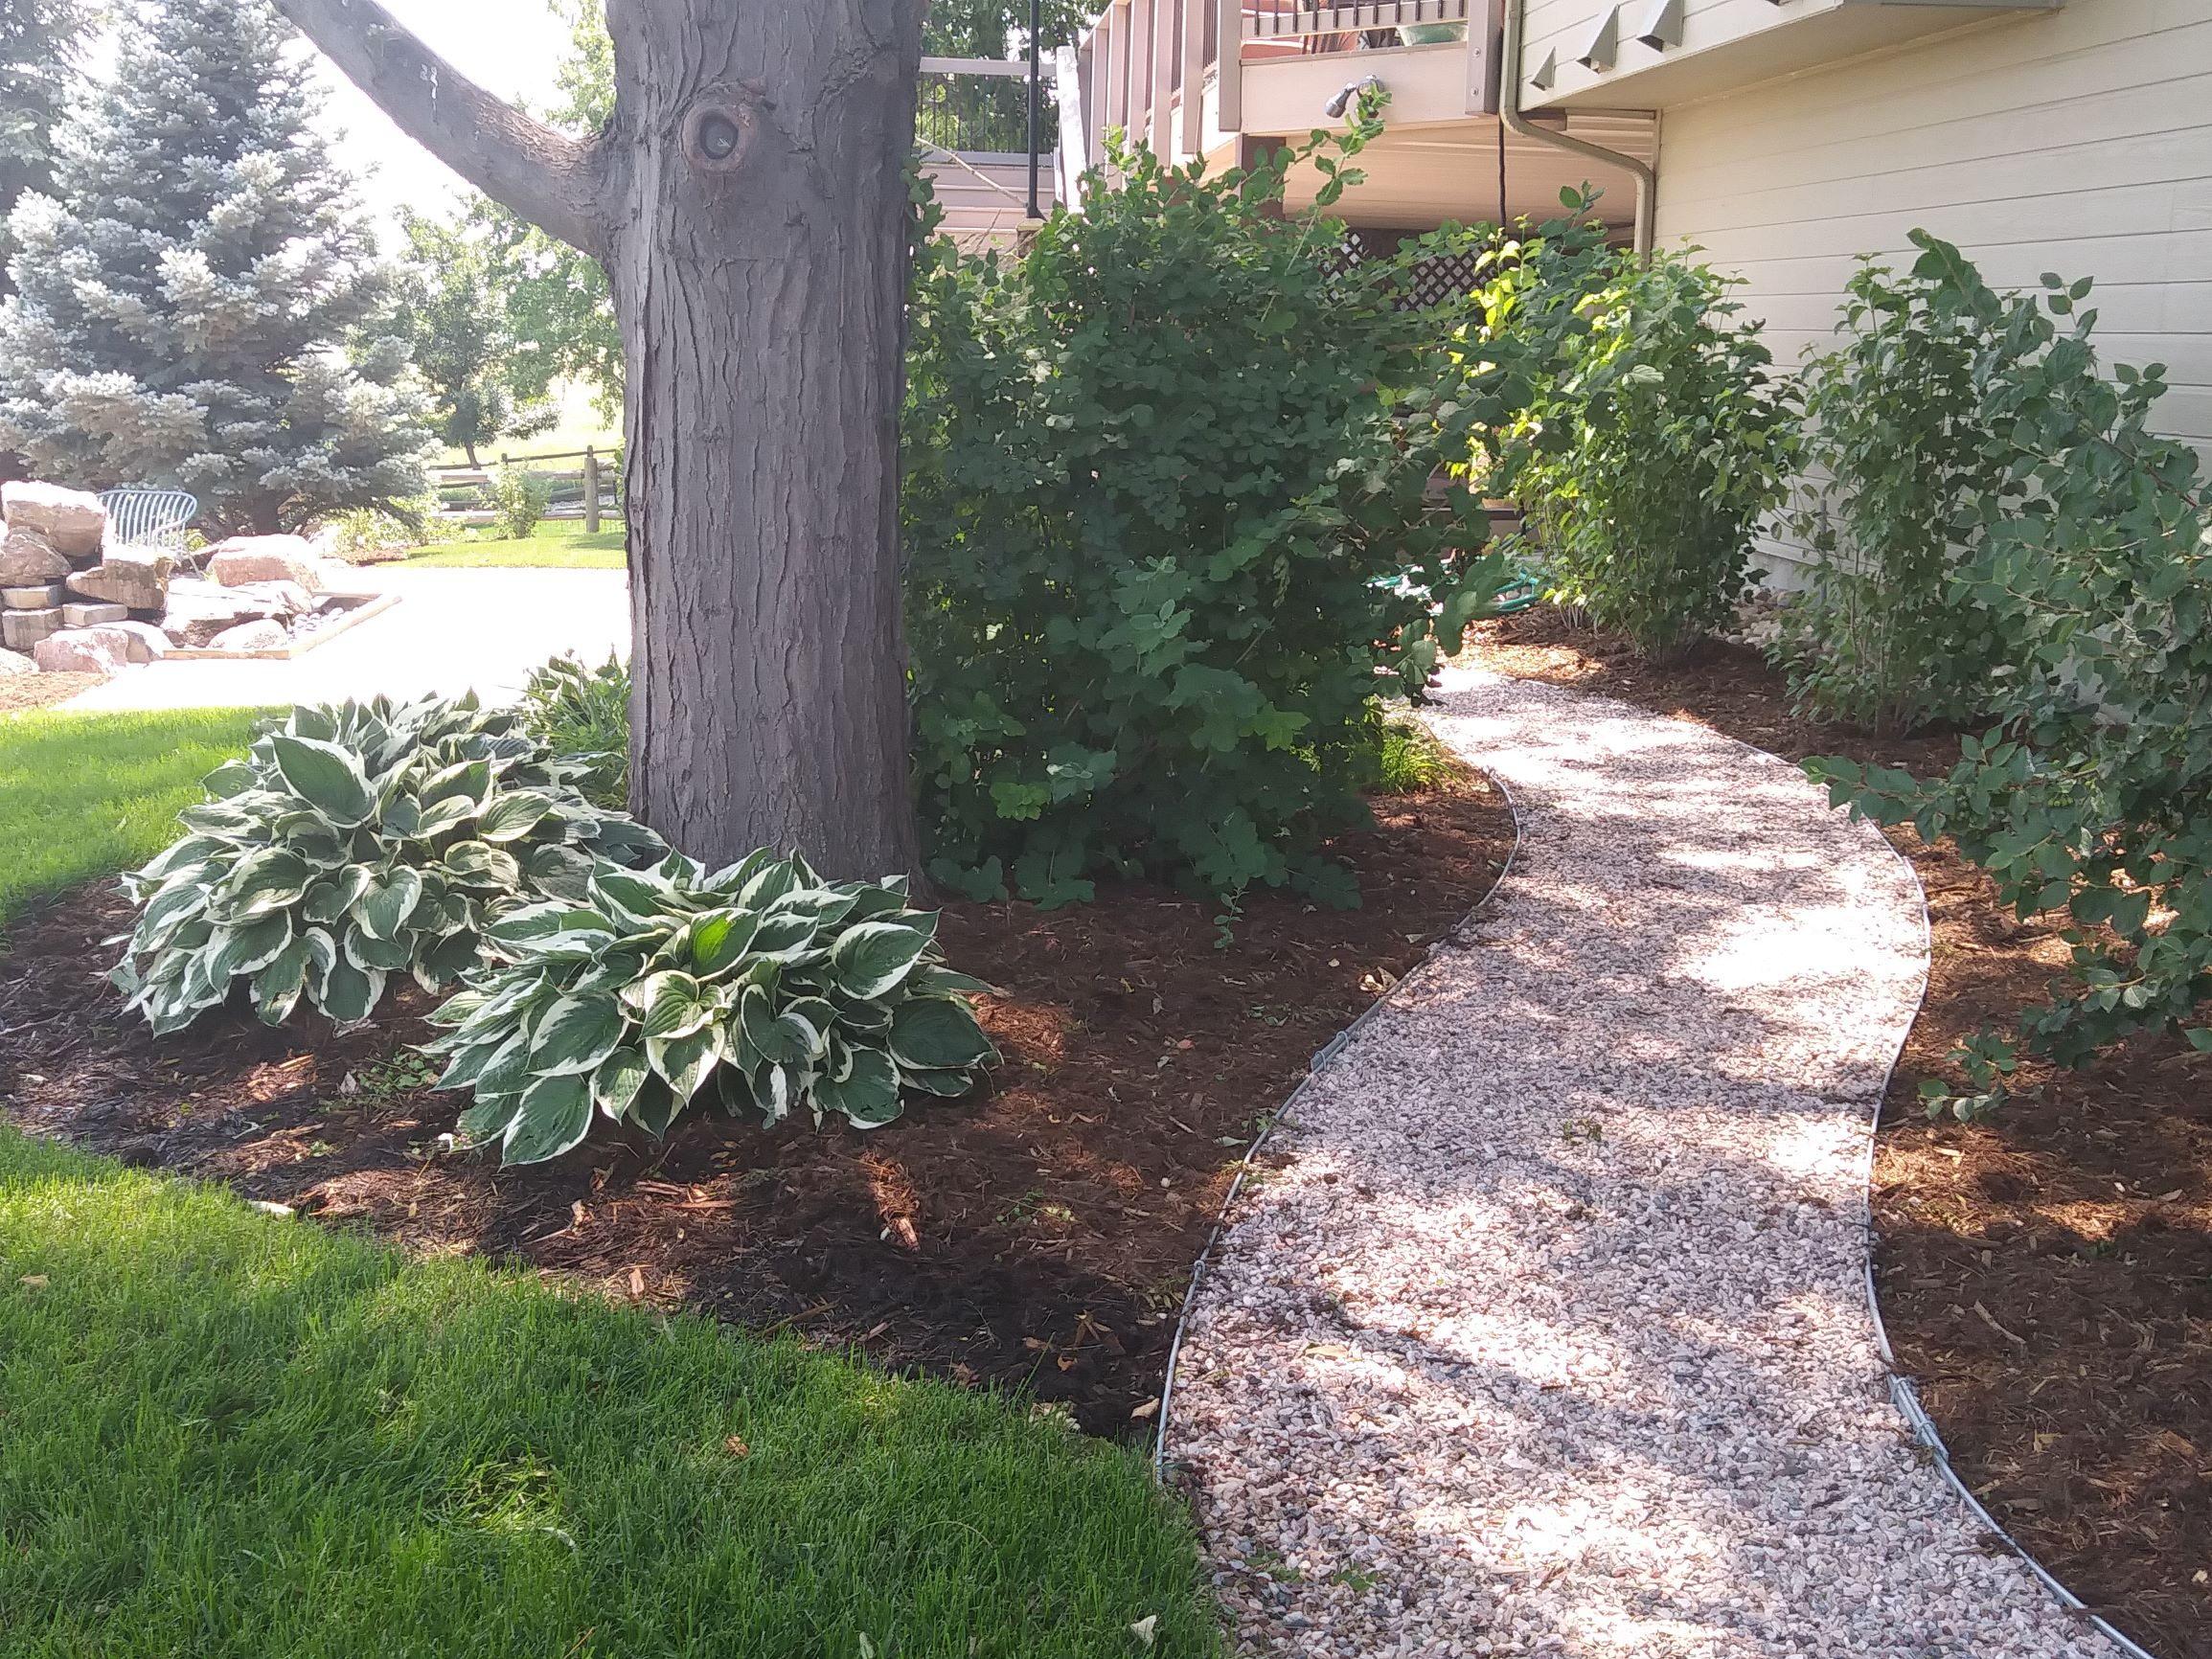 Gravel path winding between trees and bushes bordered with mulch and plants.